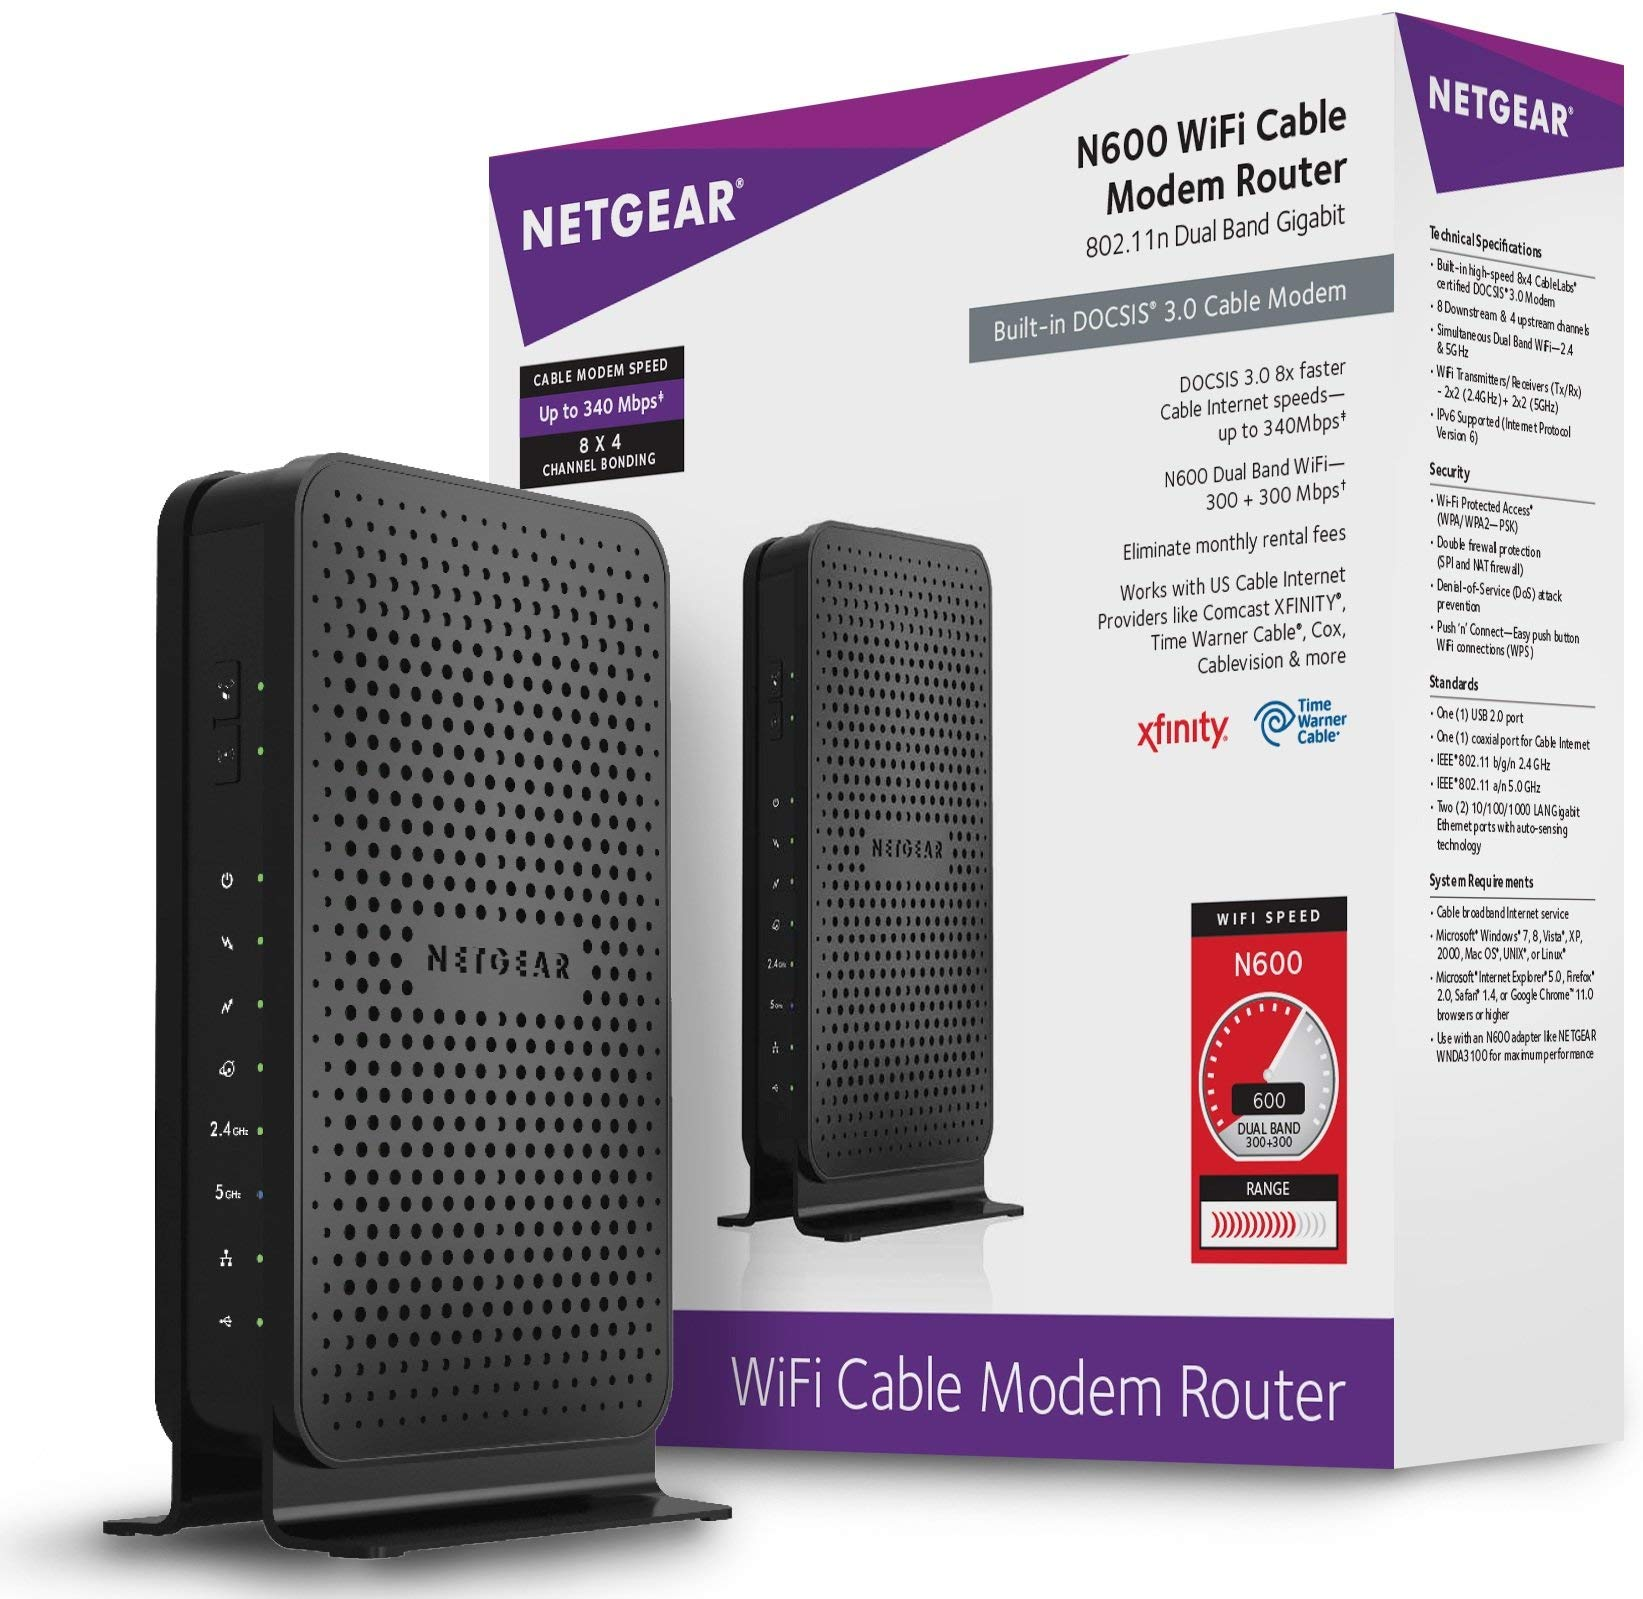 NETGEAR Dual-Band N600 Router with 8 x 4 DOCSIS 3.0 Cable Modem (C3700-100NAS) Black - Renewed by NETGEAR